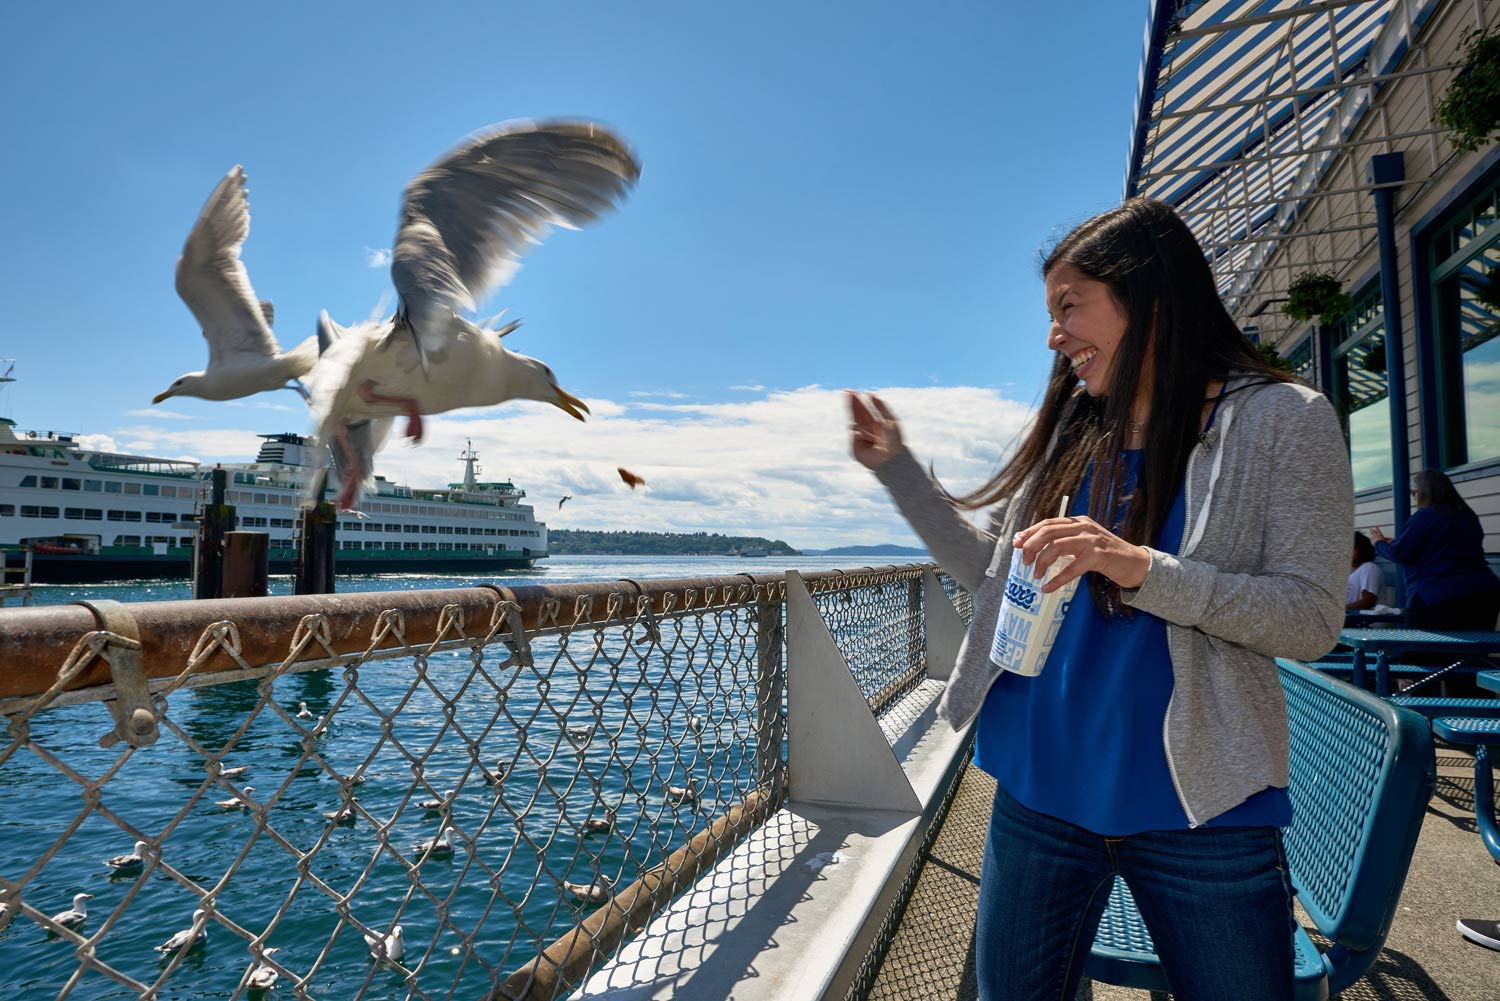 Seagull steals a chip at the waterfront